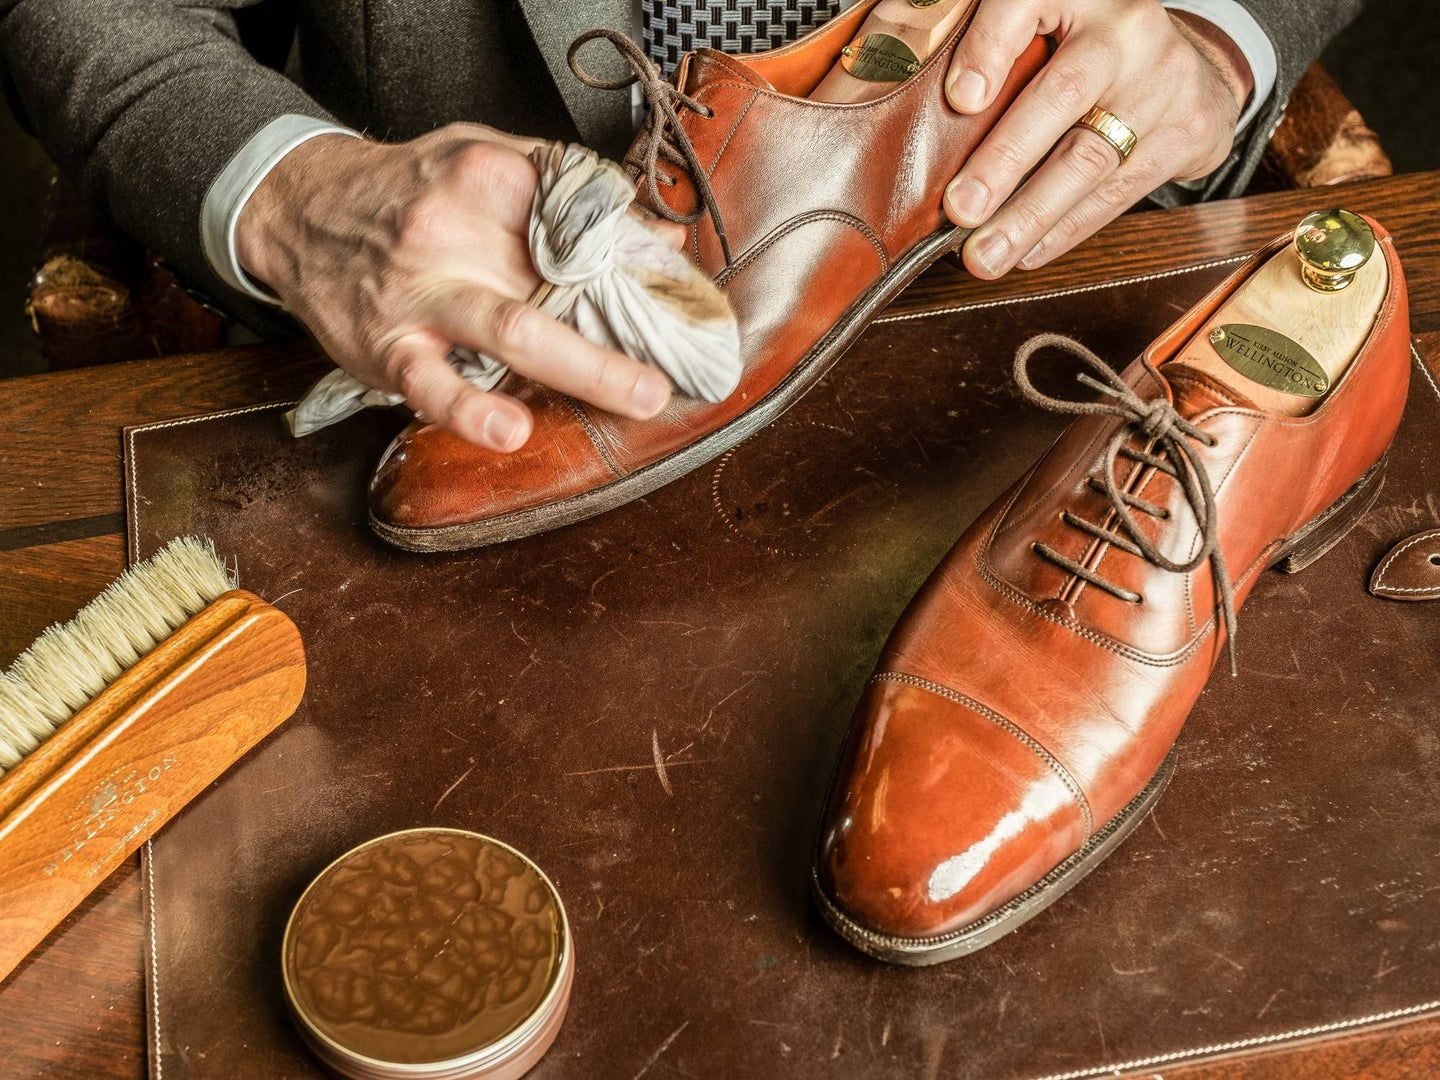 Hands polishing fancy leather shoes on a fancy wooden table.